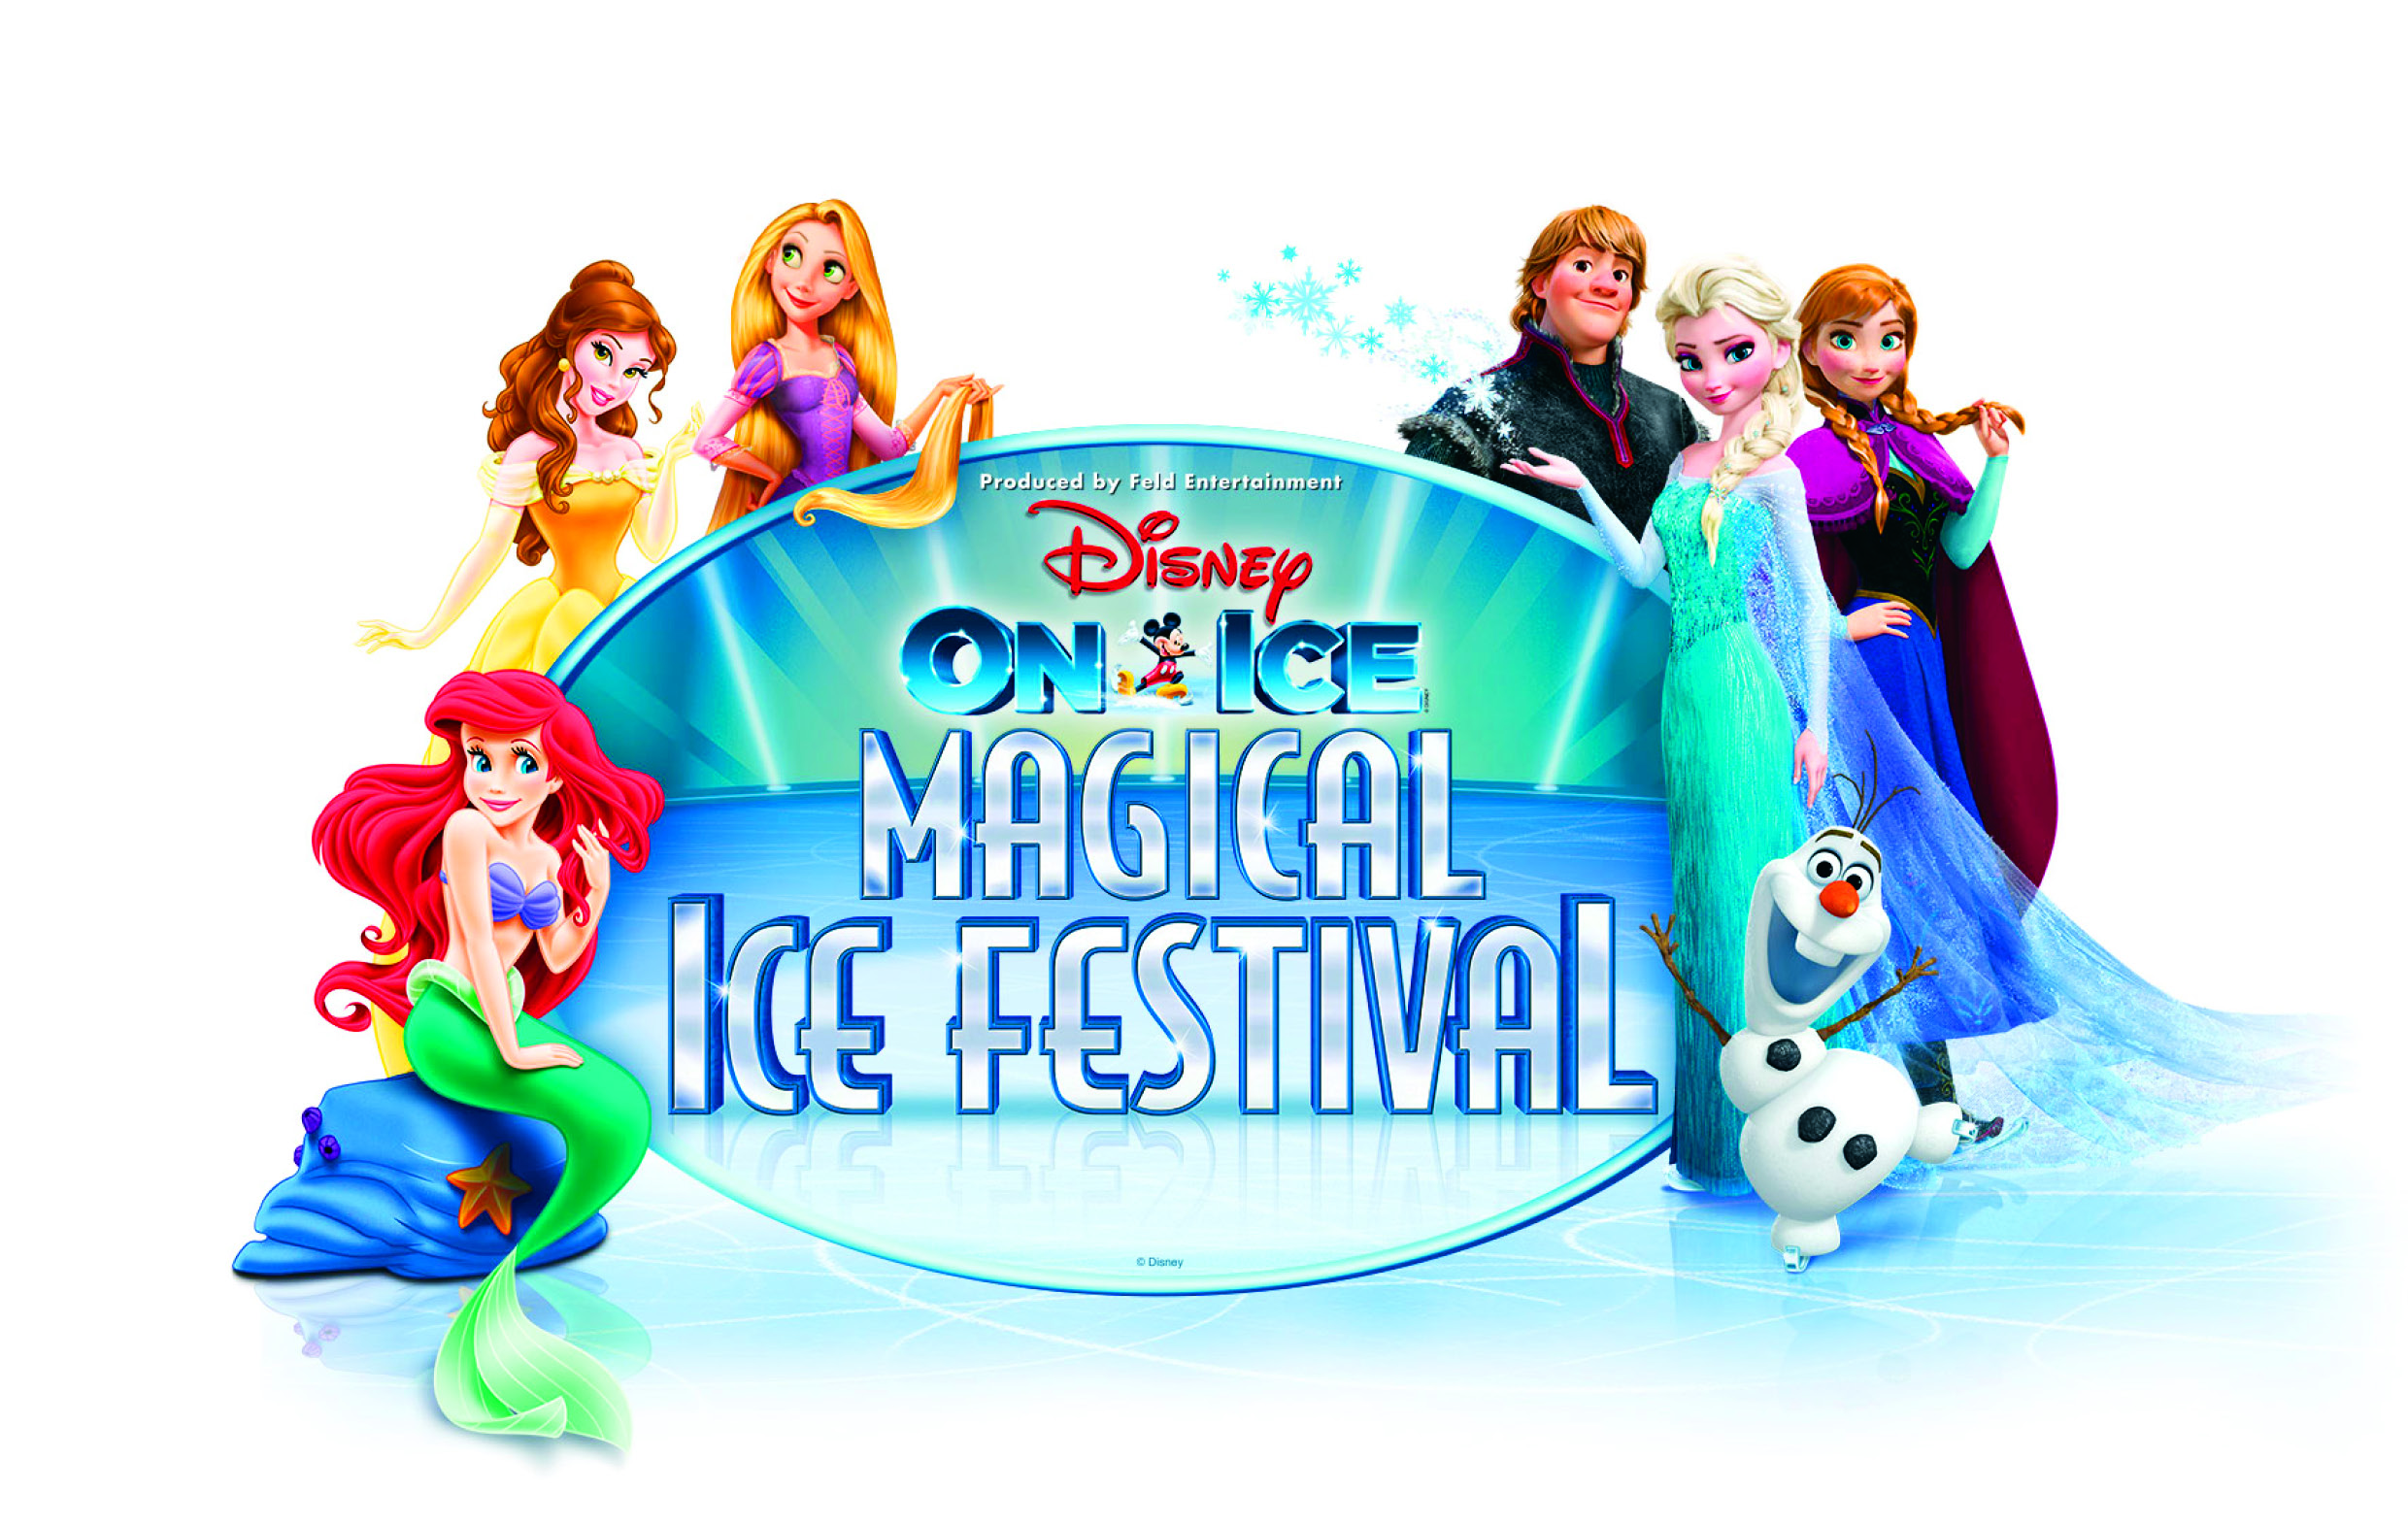 Disney On Ice Olaf interview